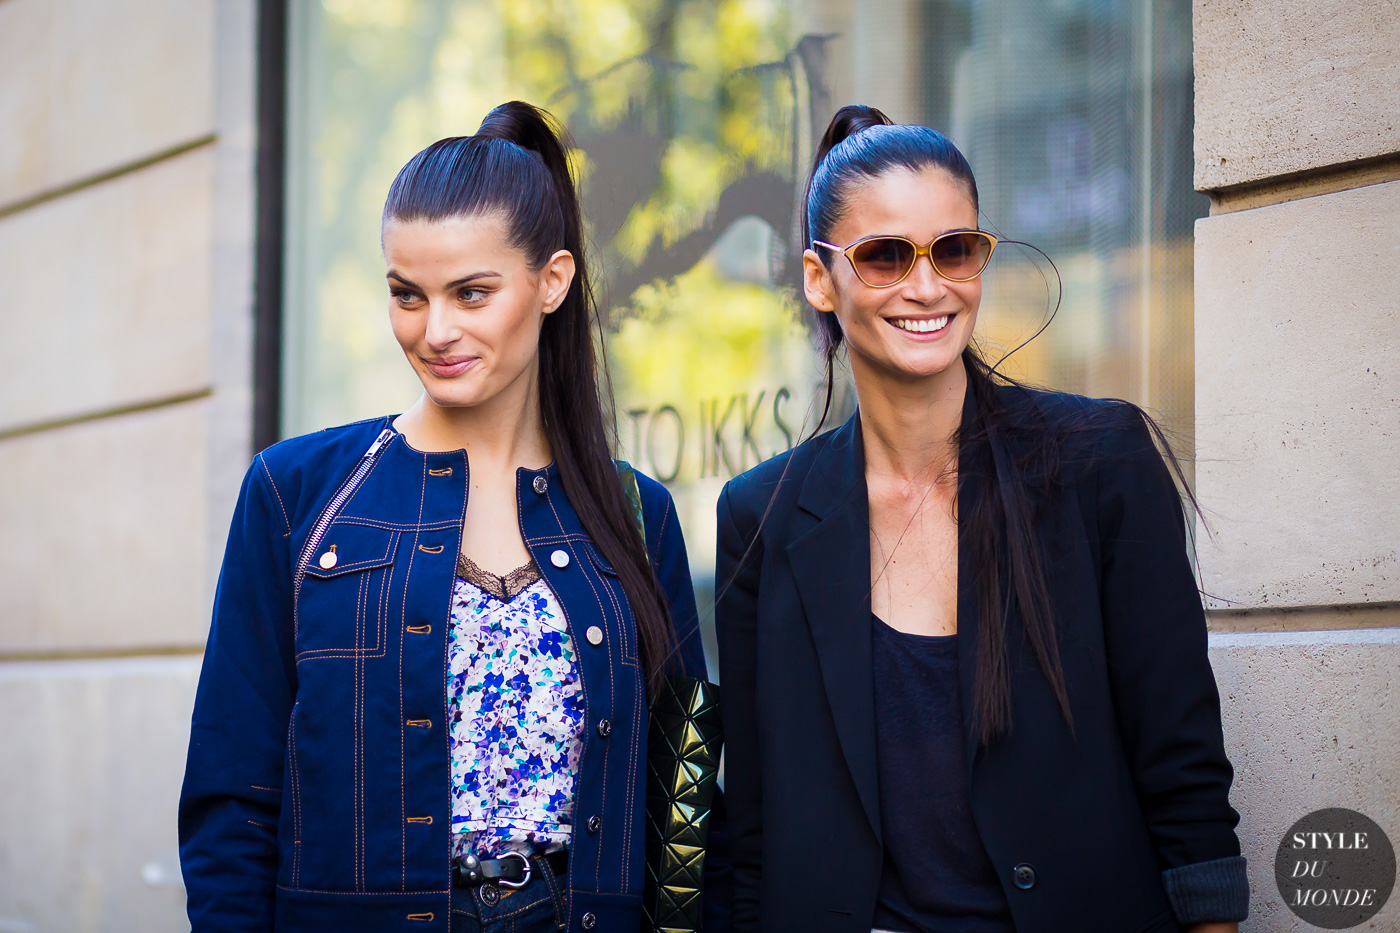 Isabeli Fontana and Carolina Ribeiro Street Style Street Fashion Streetsnaps by STYLEDUMONDE Street Style Fashion Photography